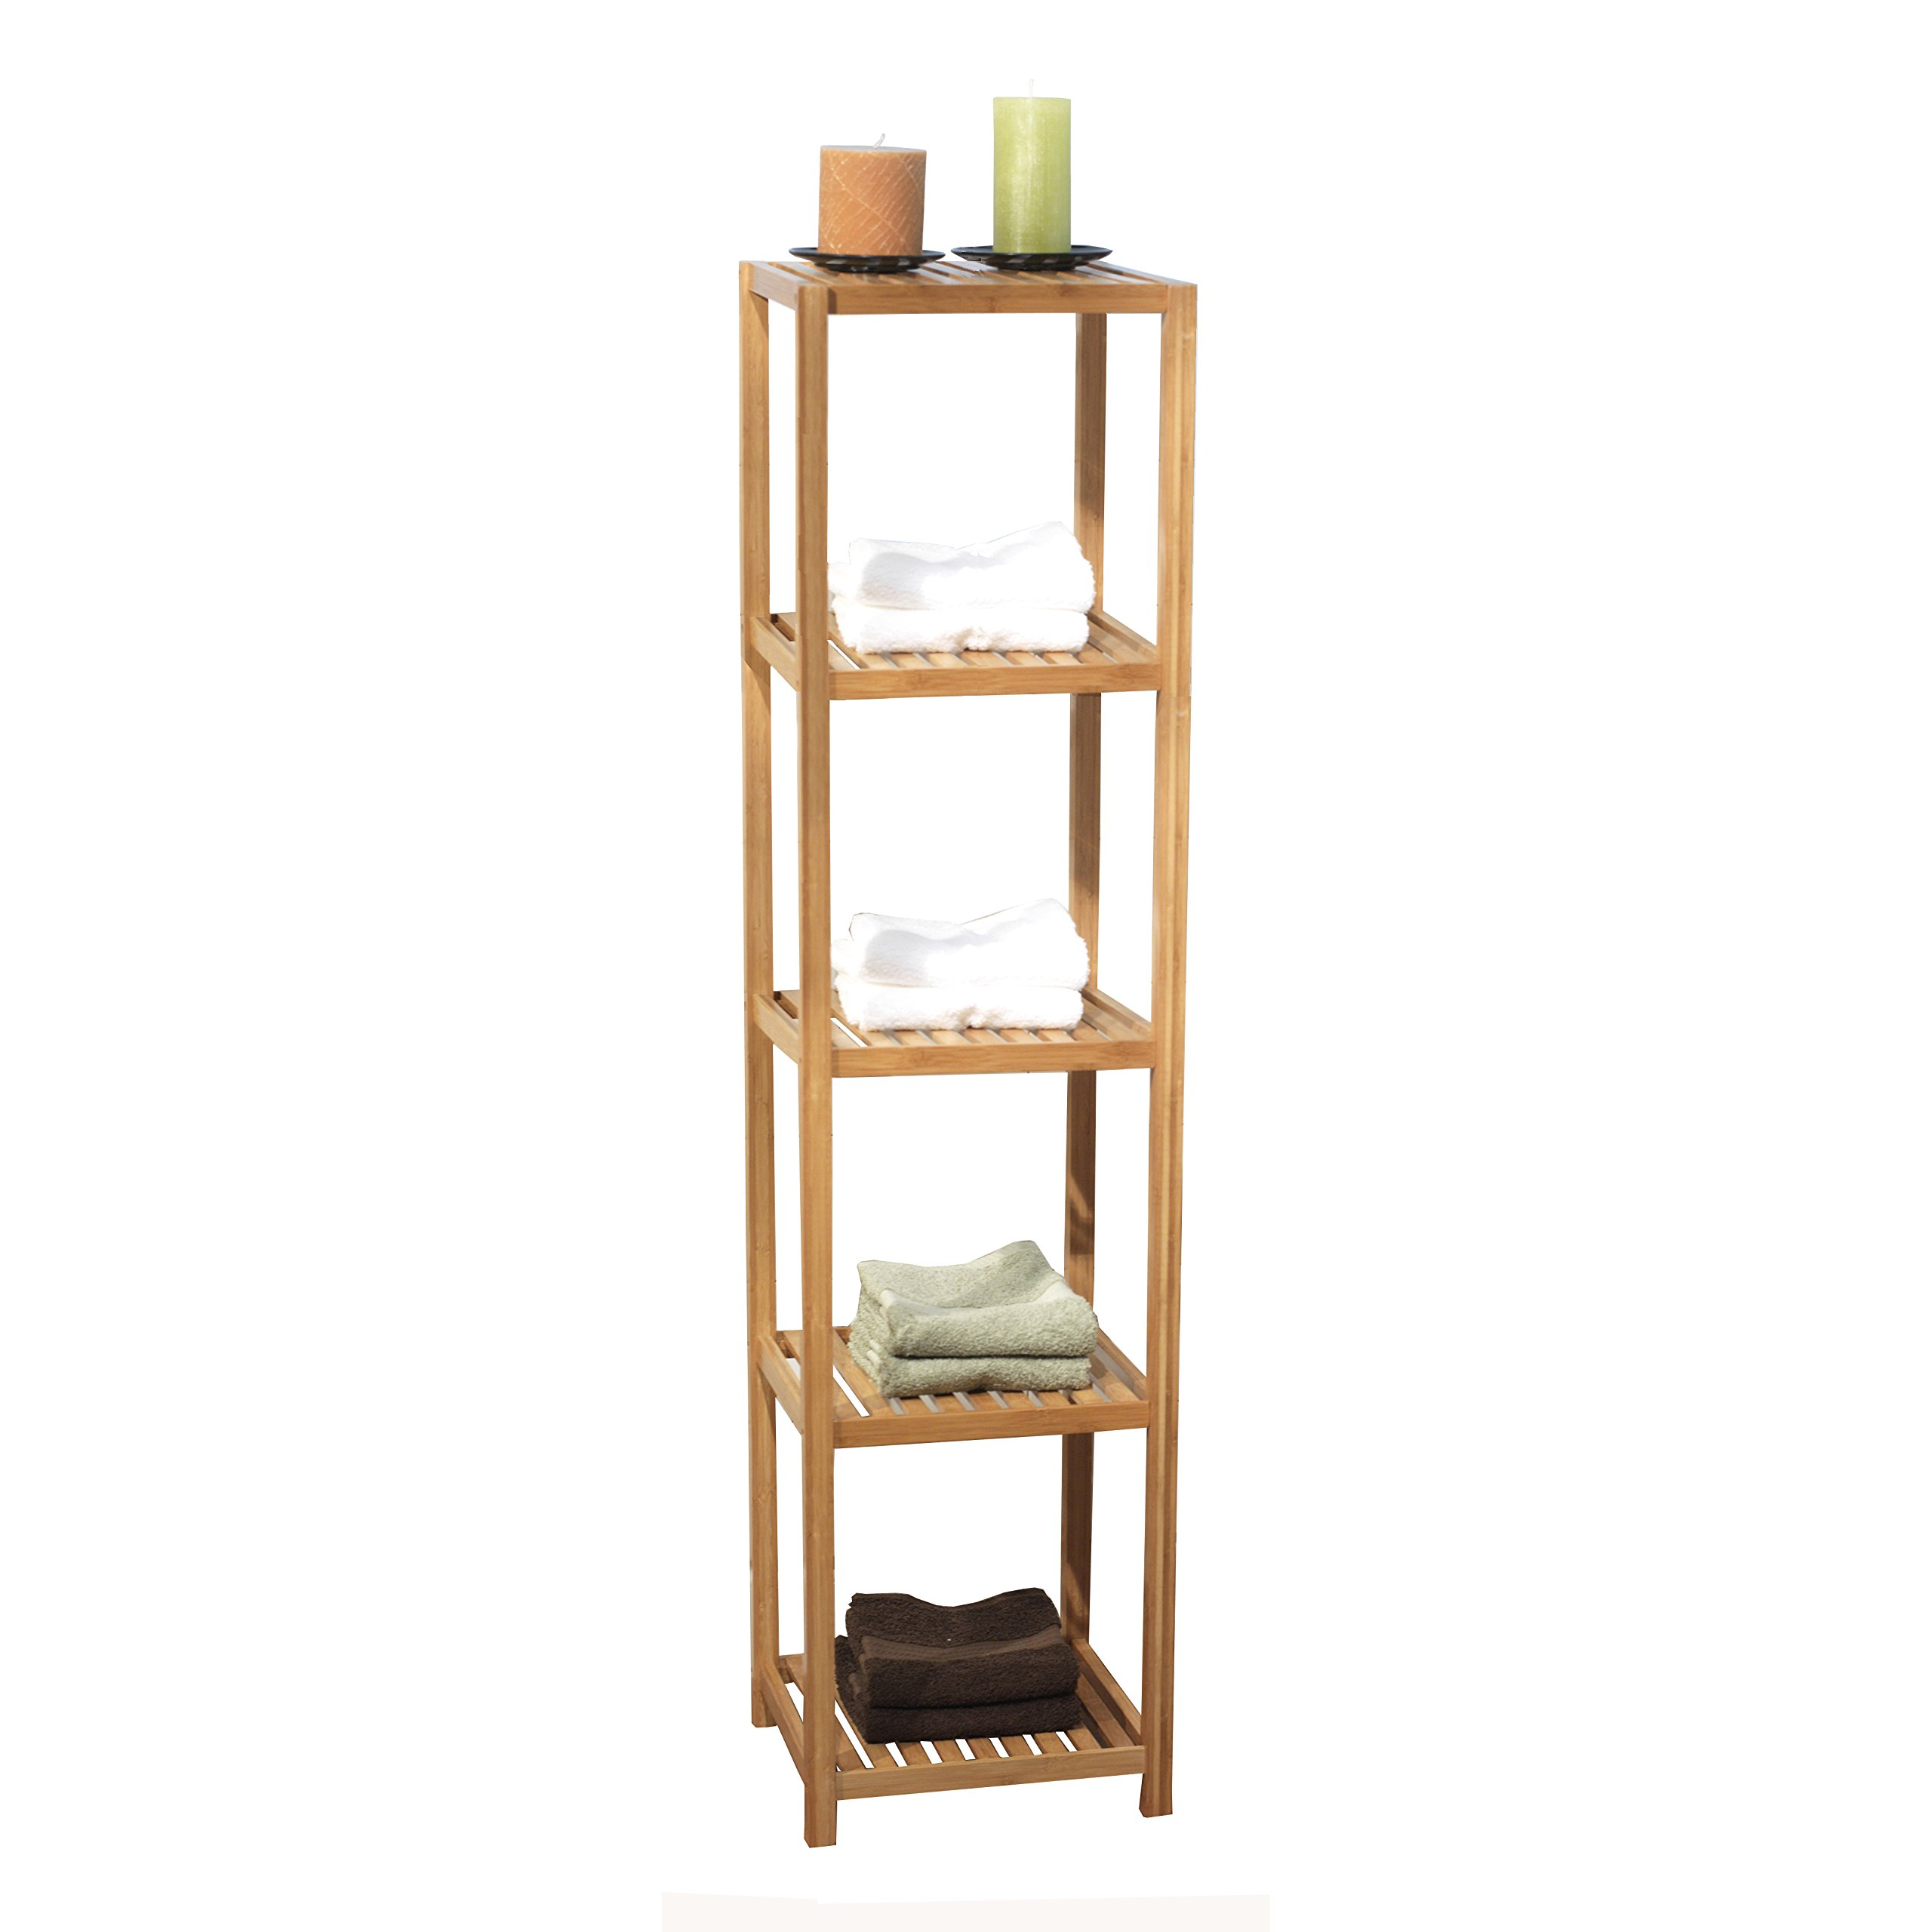 Target Marketing Systems Bamboo Shelf 5 Tier Bamboo Bathroom Shelf, Bamboo